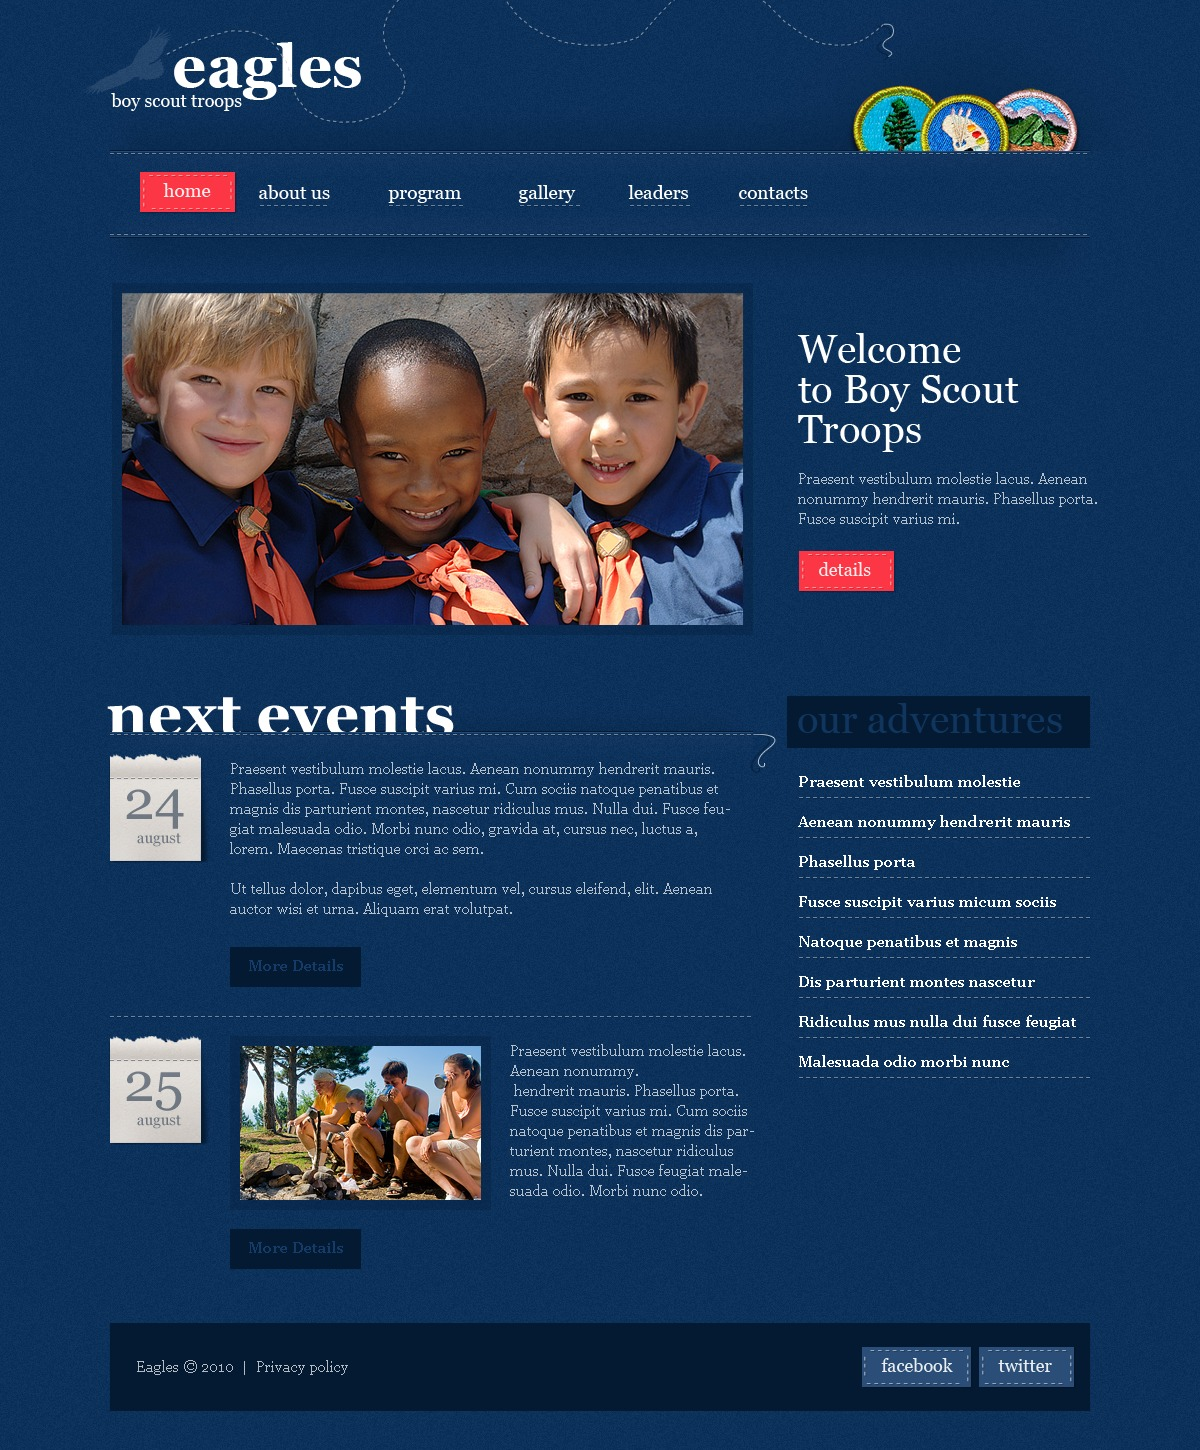 The Eagles Boy PSD Design 54102, one of the best PSD templates of its kind (society & culture, wide), also known as eagles boy PSD template, scout PSD template, troop PSD template, boy PSD template, adventure PSD template, organization PSD template, foundation PSD template, program PSD template, education PSD template, uniform PSD template, activity PSD template, nature and related with eagles boy, scout, troop, boy, adventure, organization, foundation, program, education, uniform, activity, nature, etc.